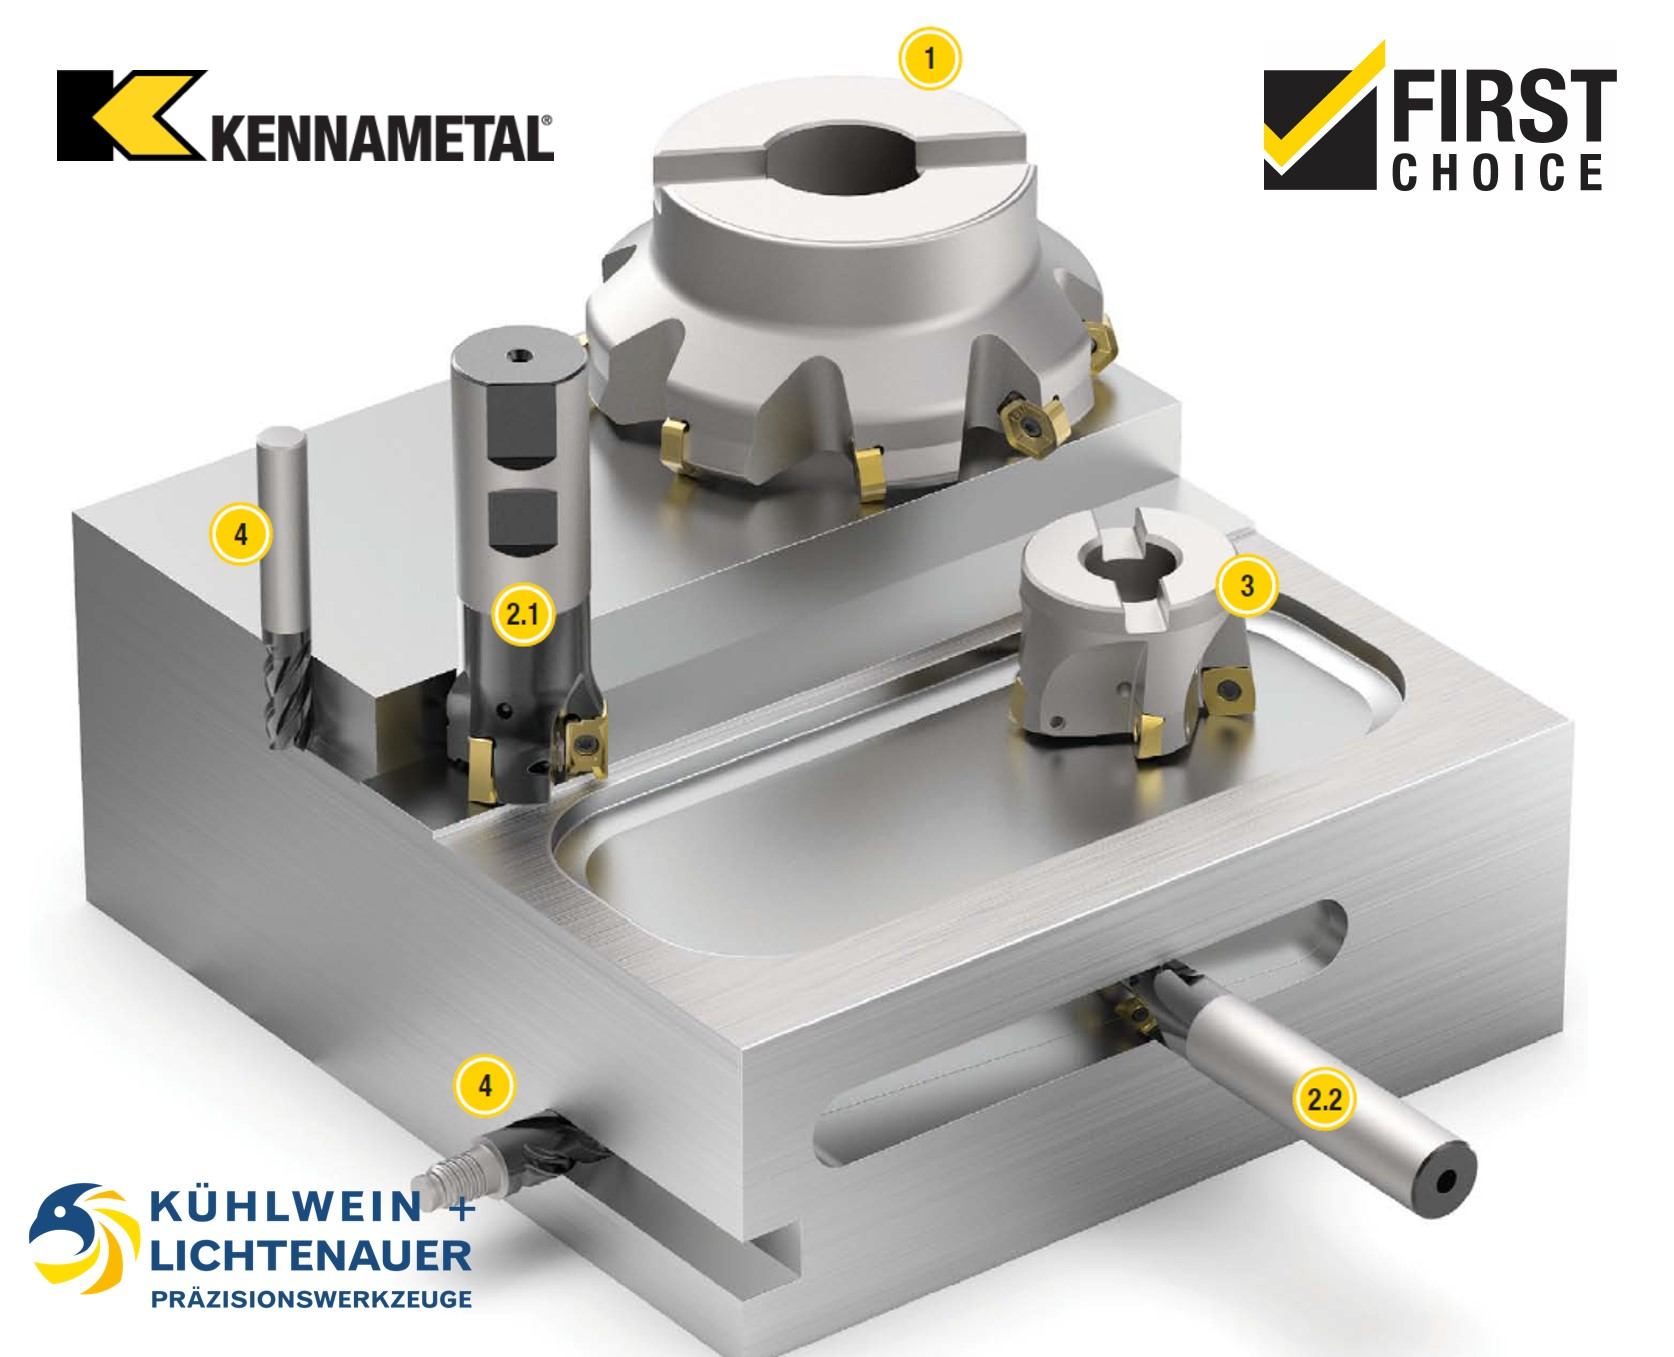 KENNAMETAL First Choice